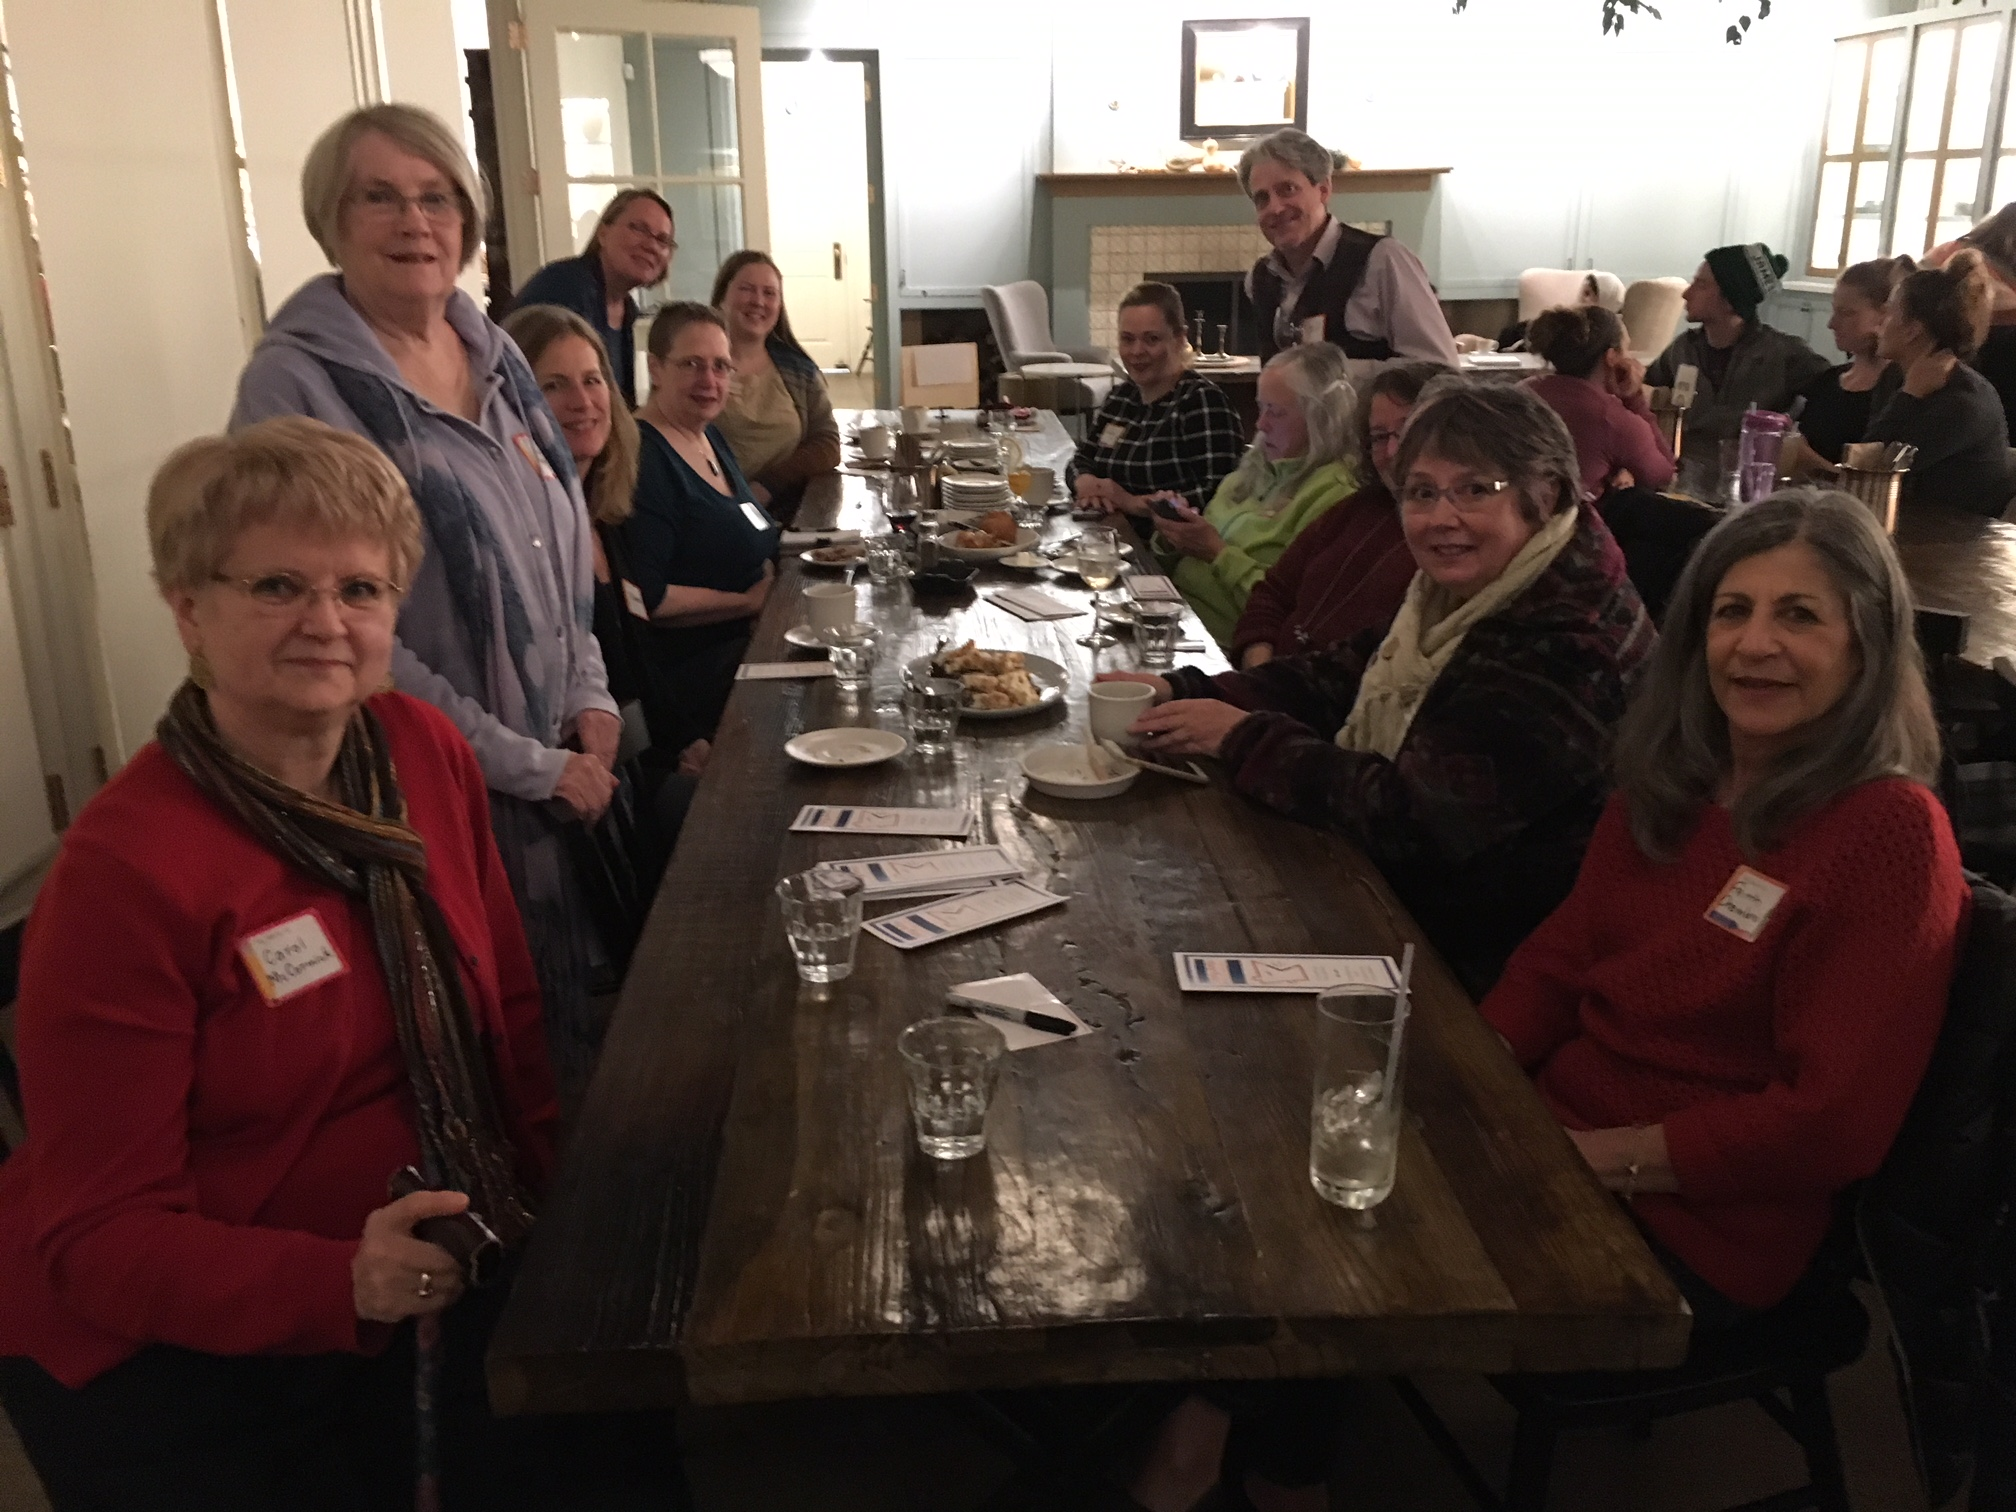 - November 14, 2017:SAM members gathered at The Lynhall for conversation and conviviality. Watch for more social get-togethers in coming months!